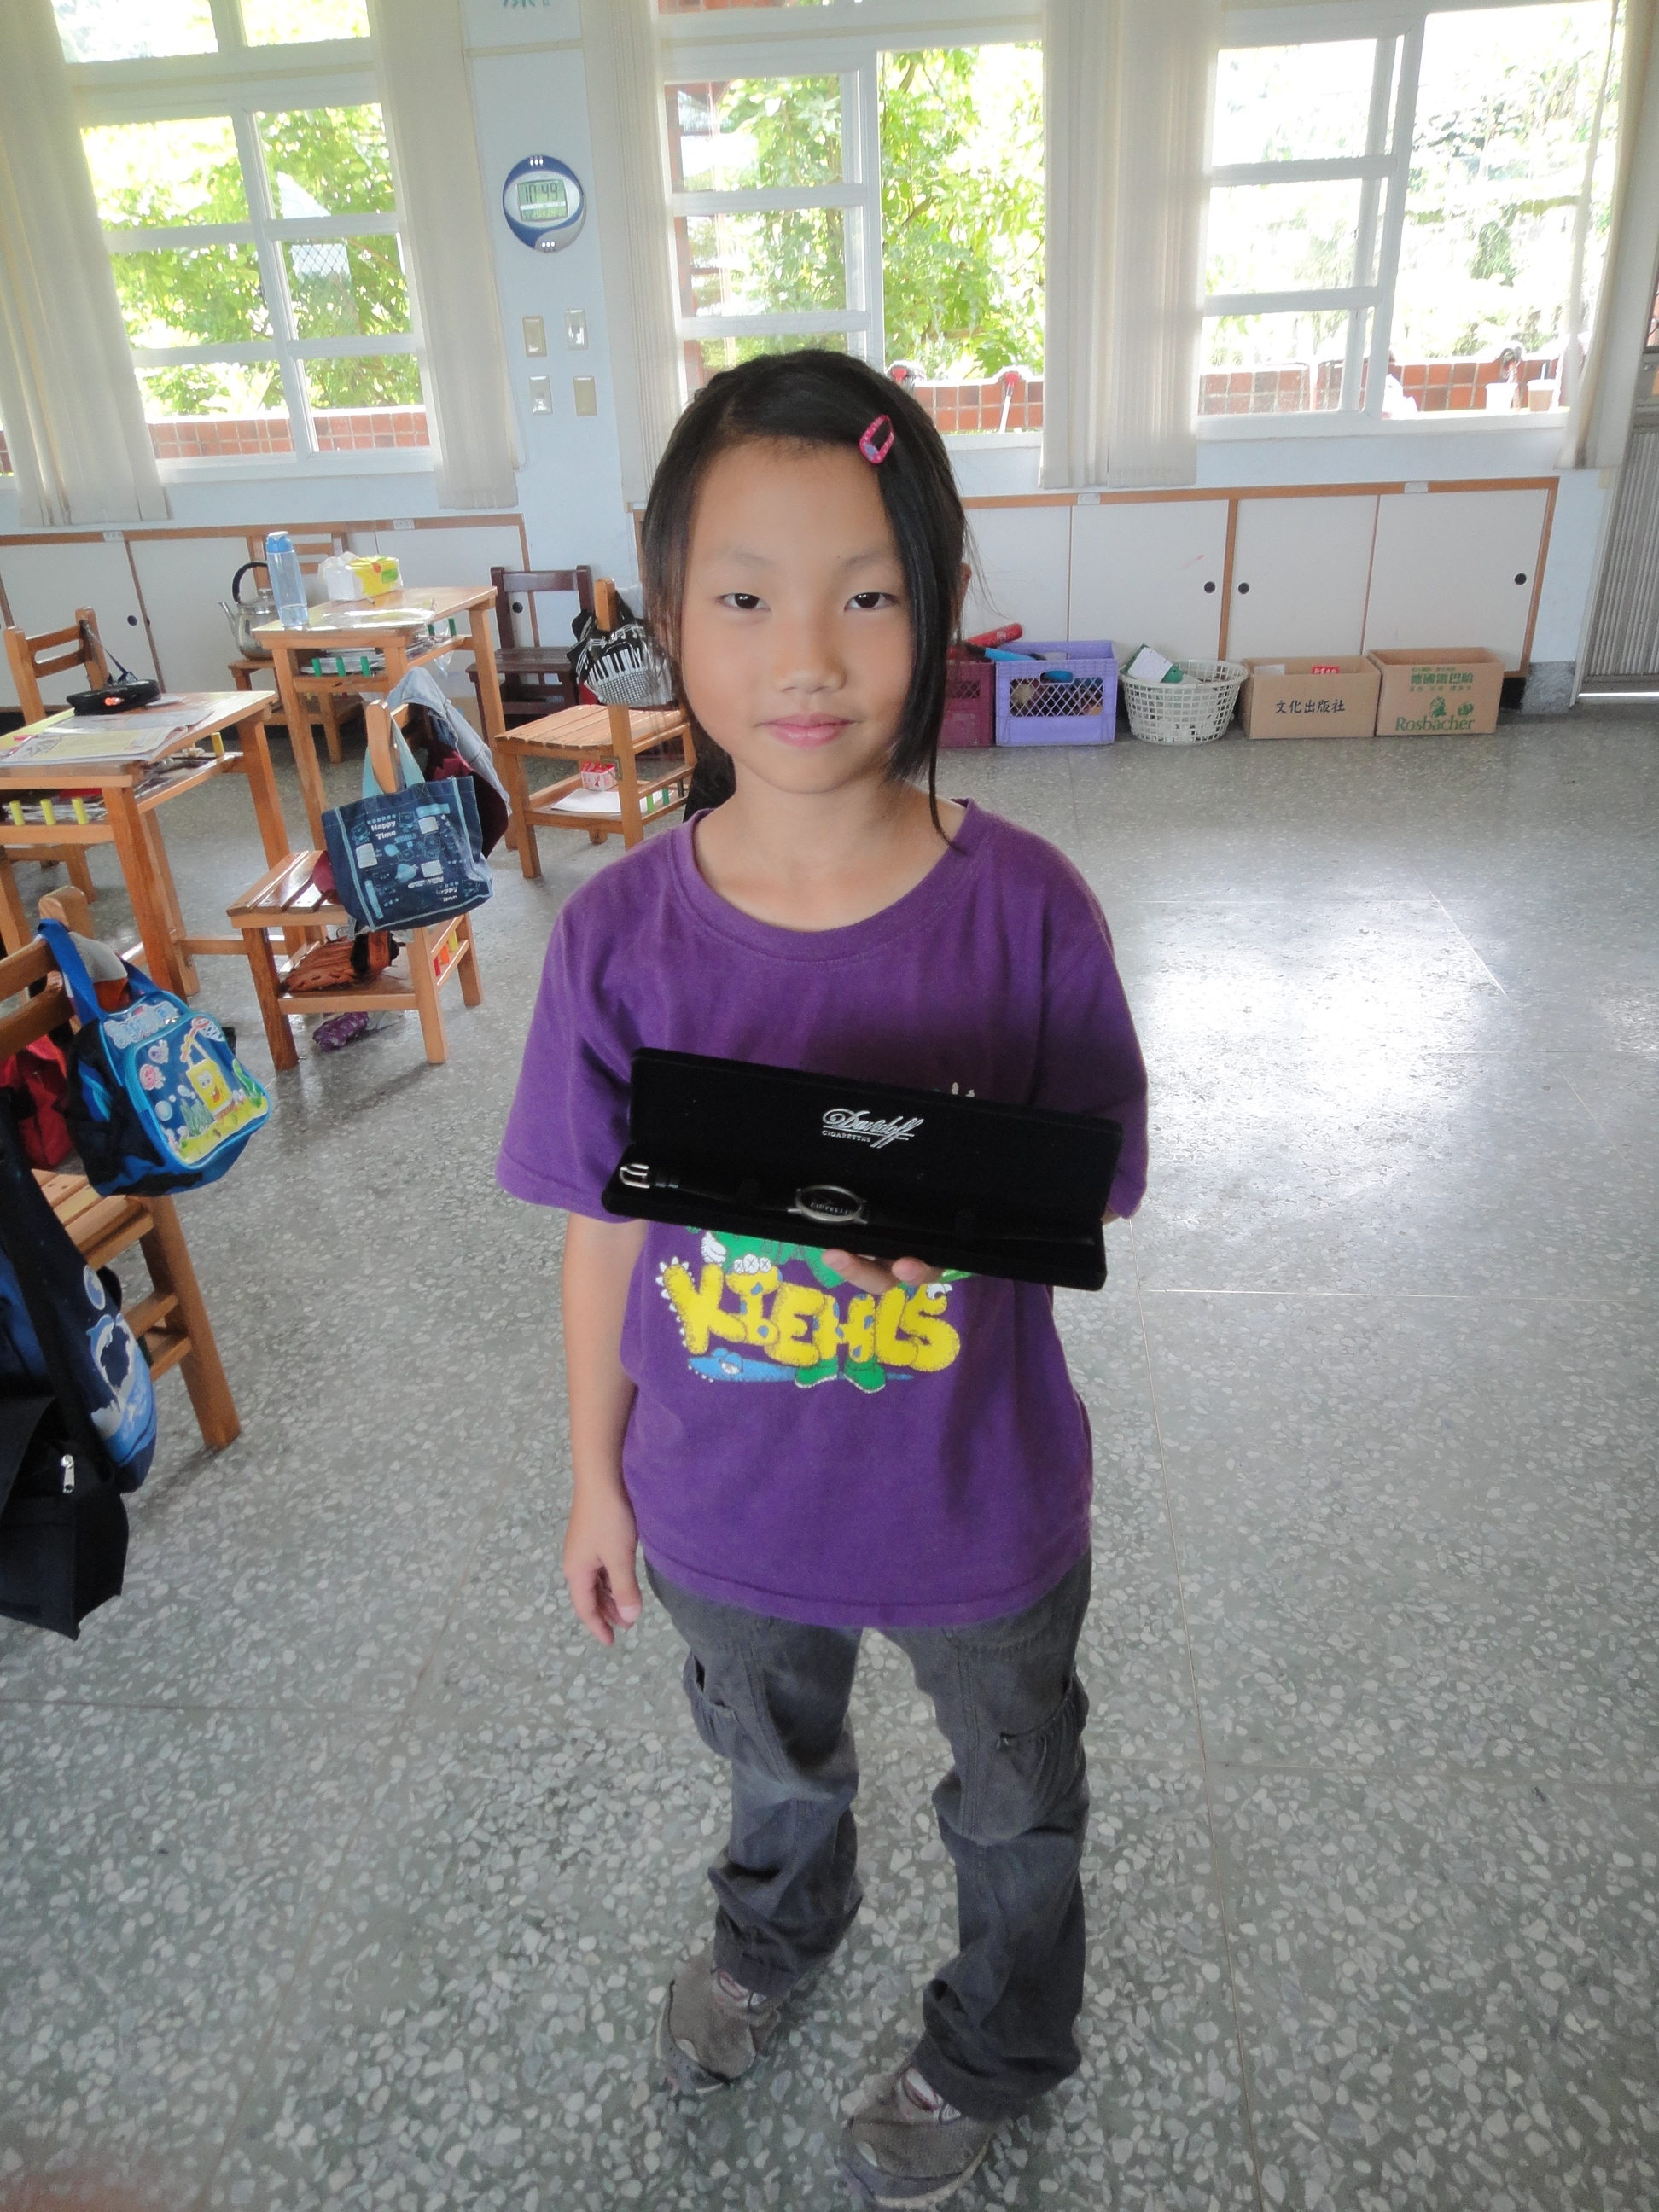 T-ball team's watches | JLian's Taiwan Volunteer Blog